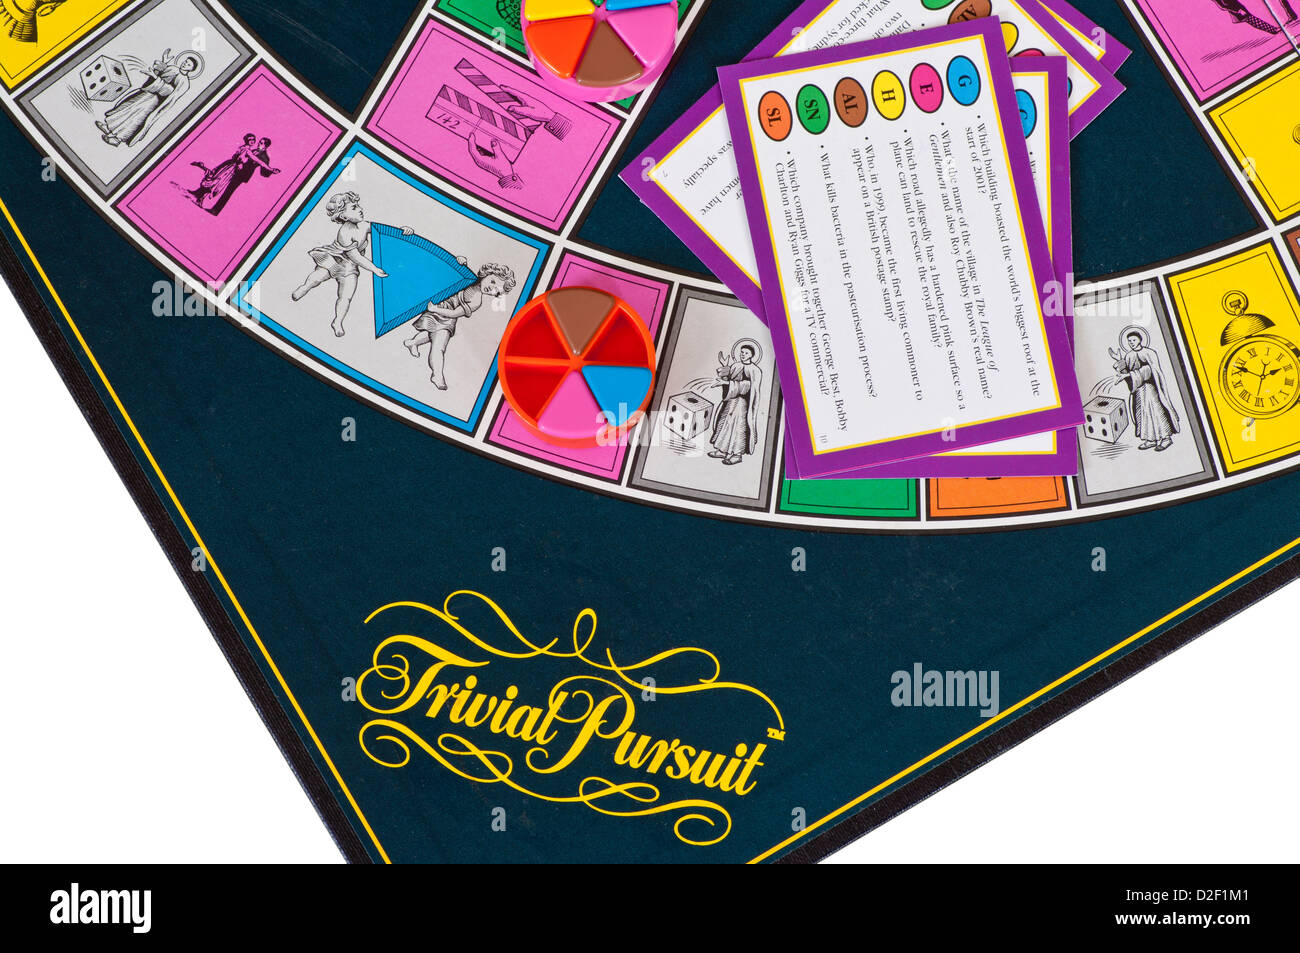 Trivial Pursuit Family Board Game - Stock Image